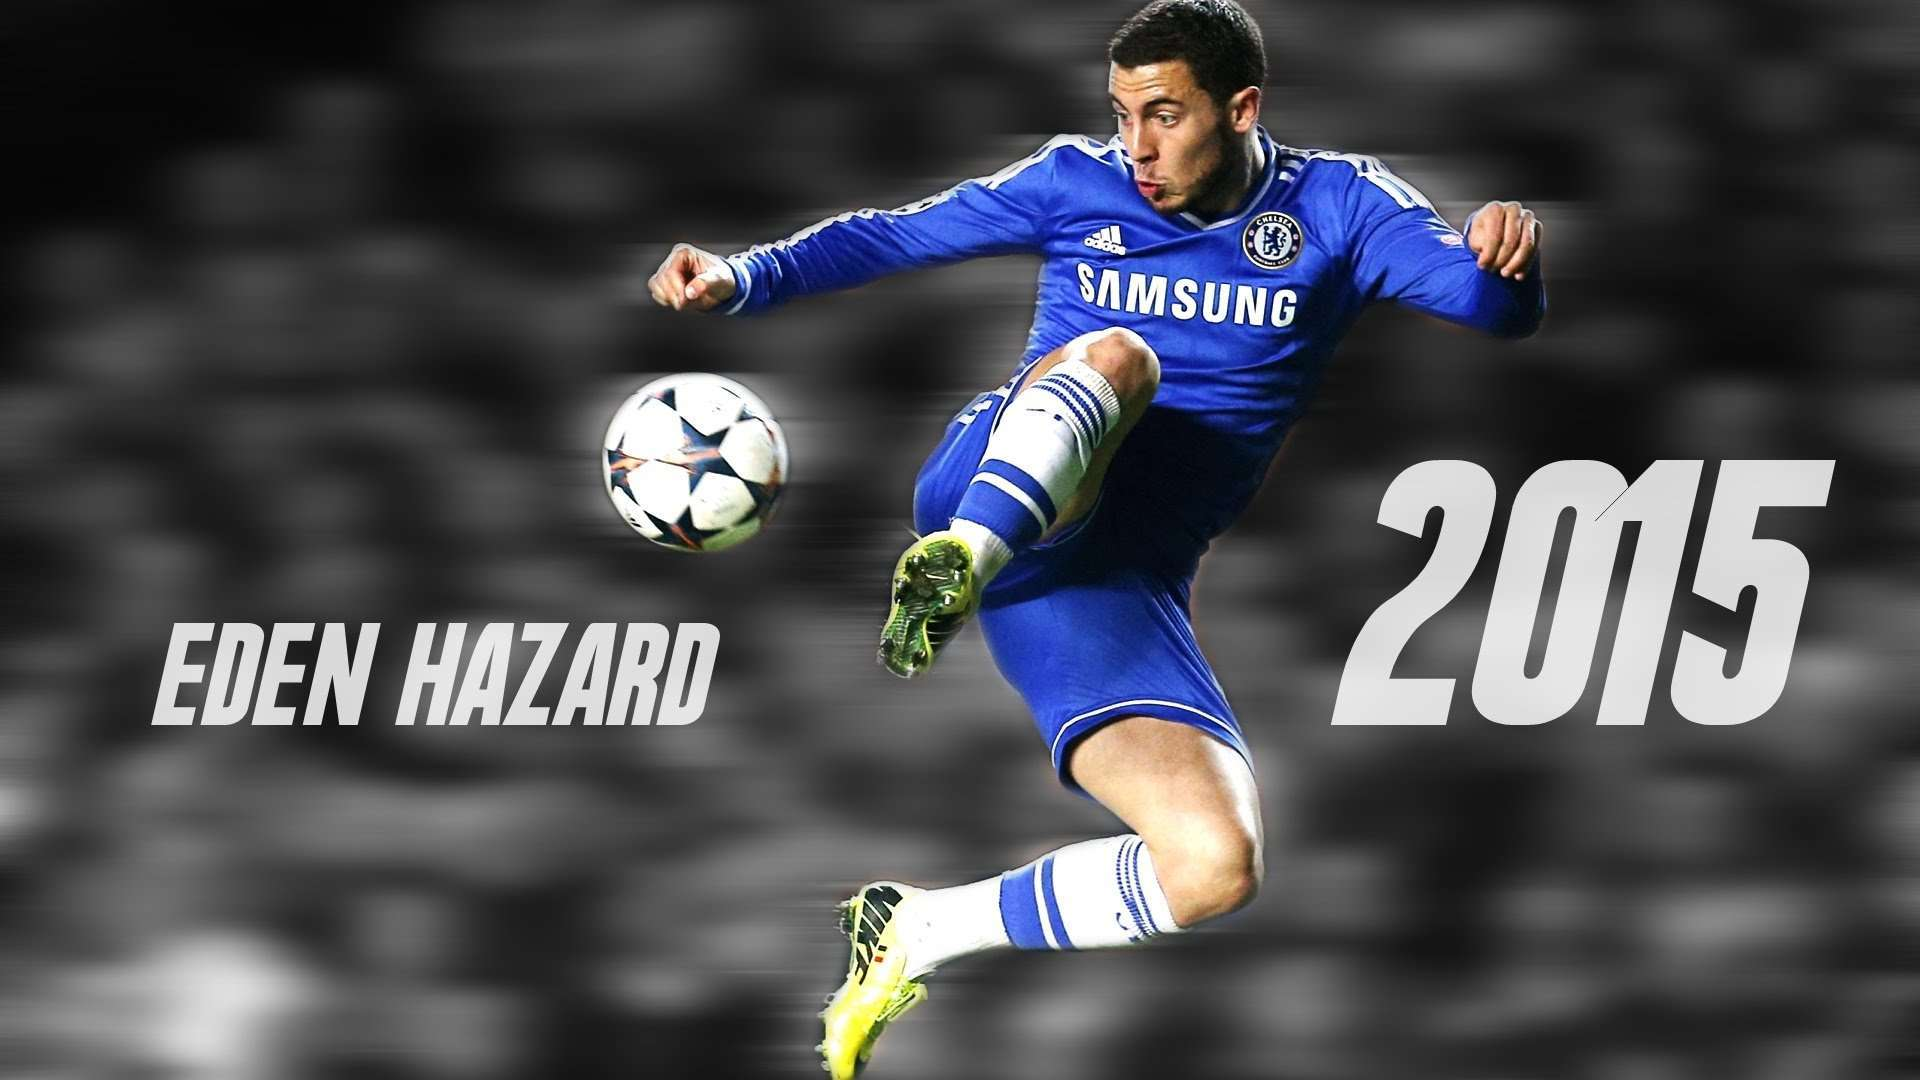 Hazard Wallpaper Collection Eden Hazard Photos Download